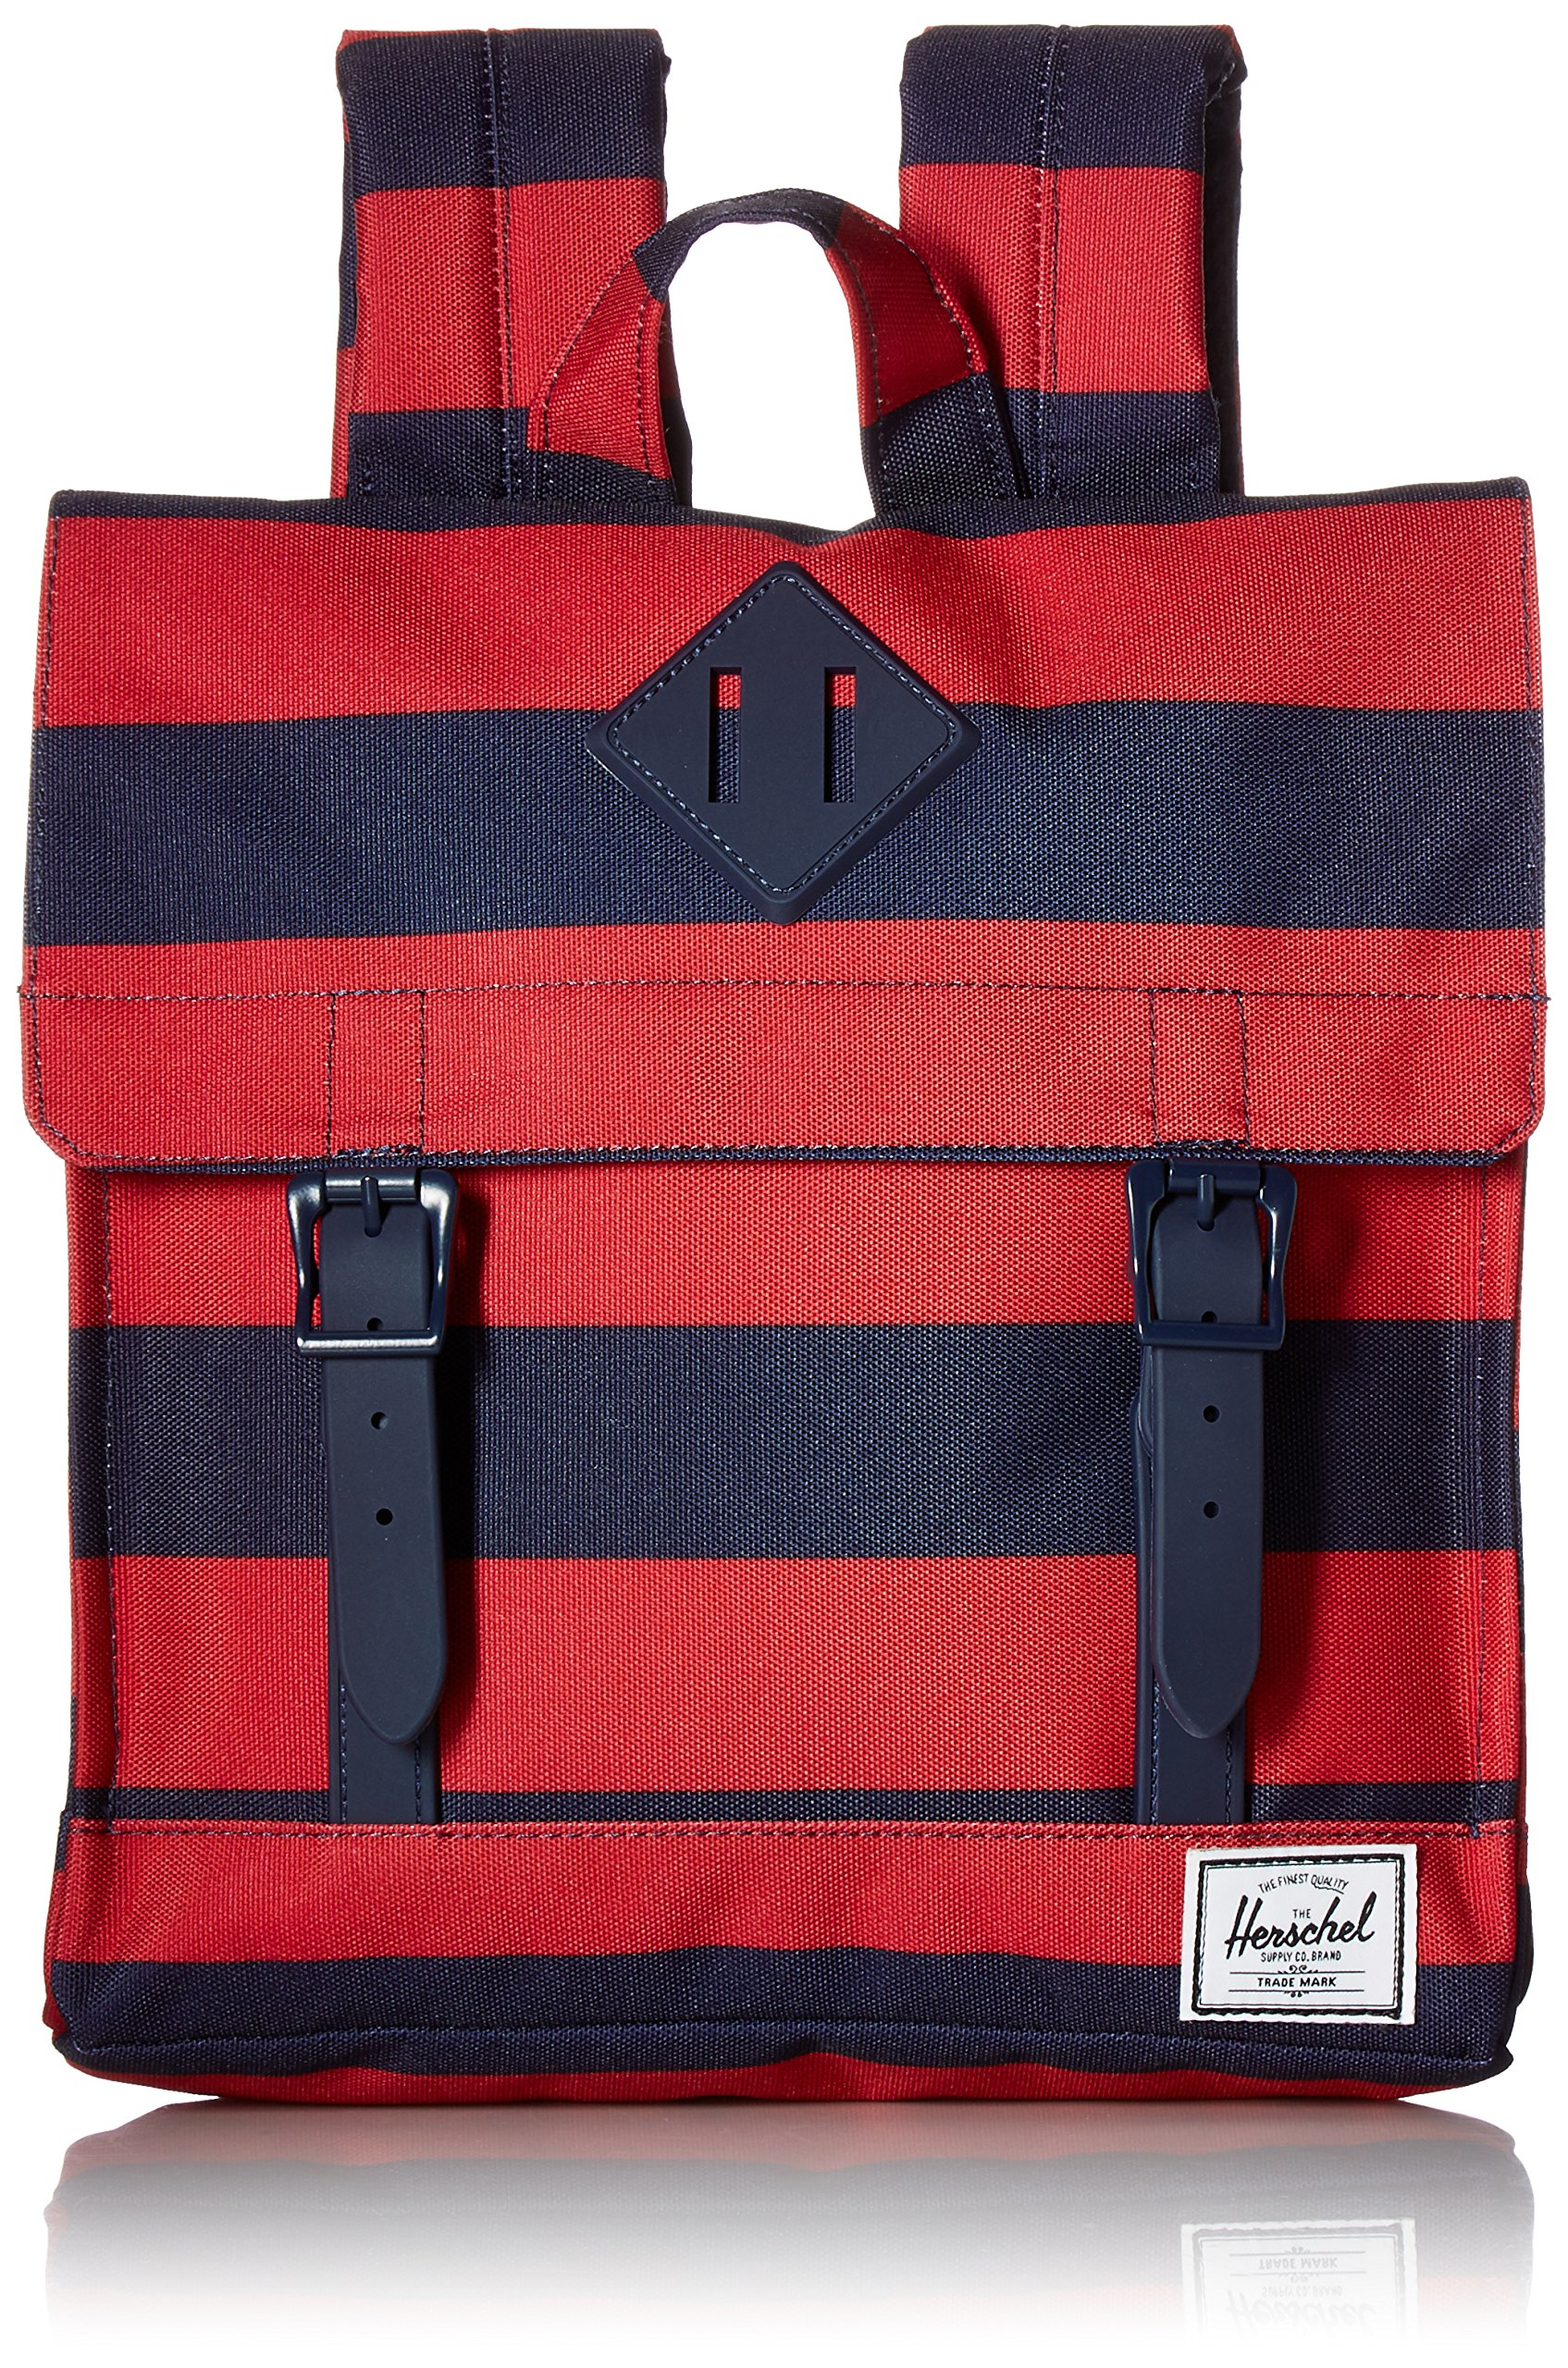 Herschel Supply Co. Survey Kids Backpack, Peacoat/Red Stripe/Peacoat Rubber